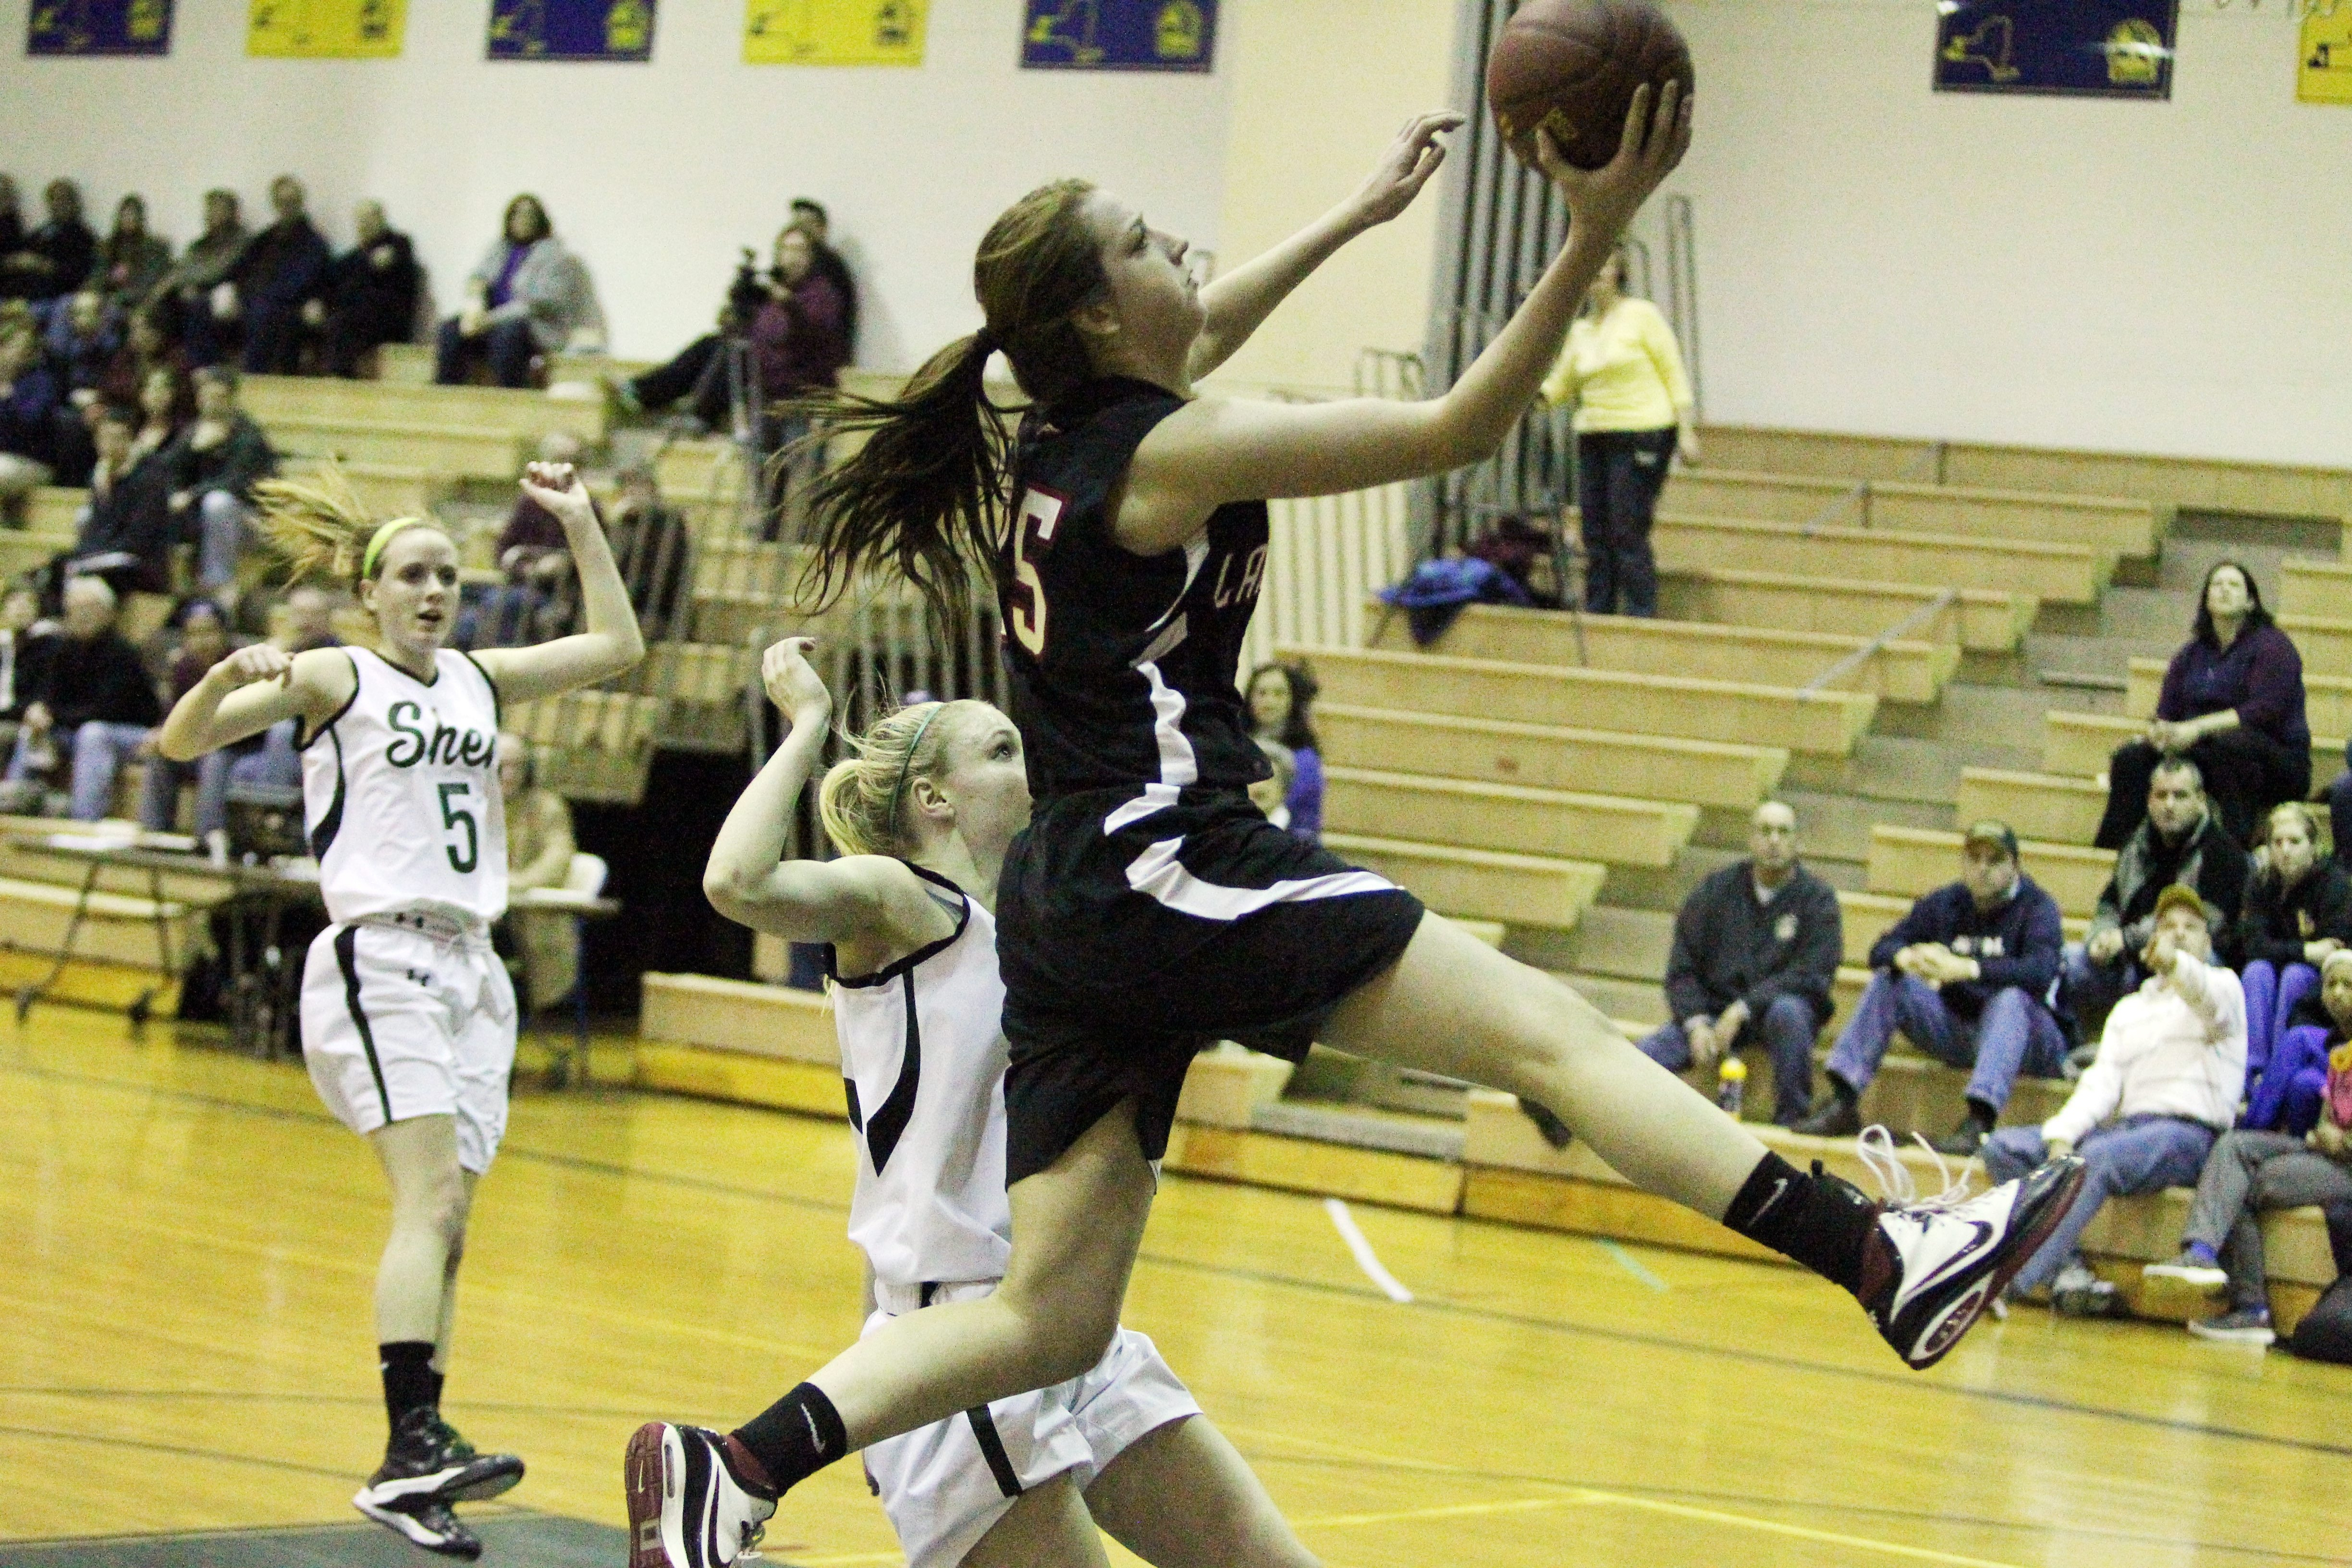 Katie Healy, the 2012 News Player of the Year from Lancaster, now plays at St. Bonaventure.